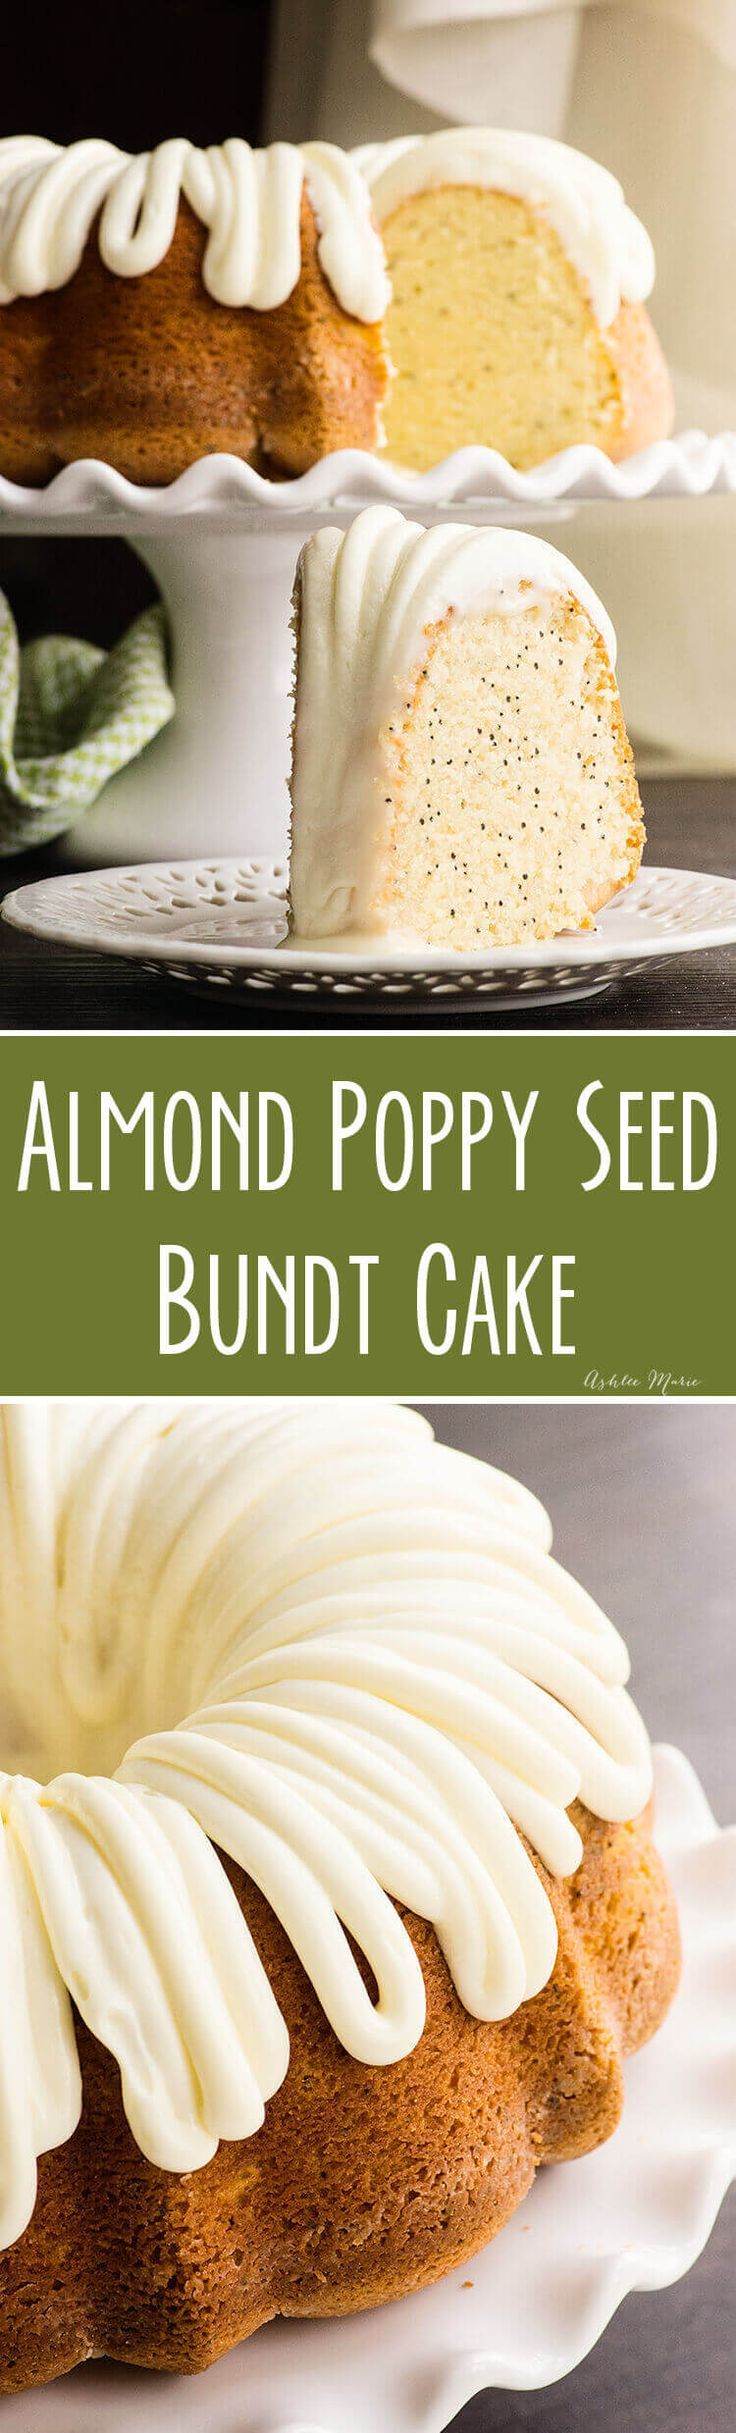 this almond poppyseed bundt cake is light and fluffy and has great texture and flavor - add the cream cheese frosting for a creamy sweet bite